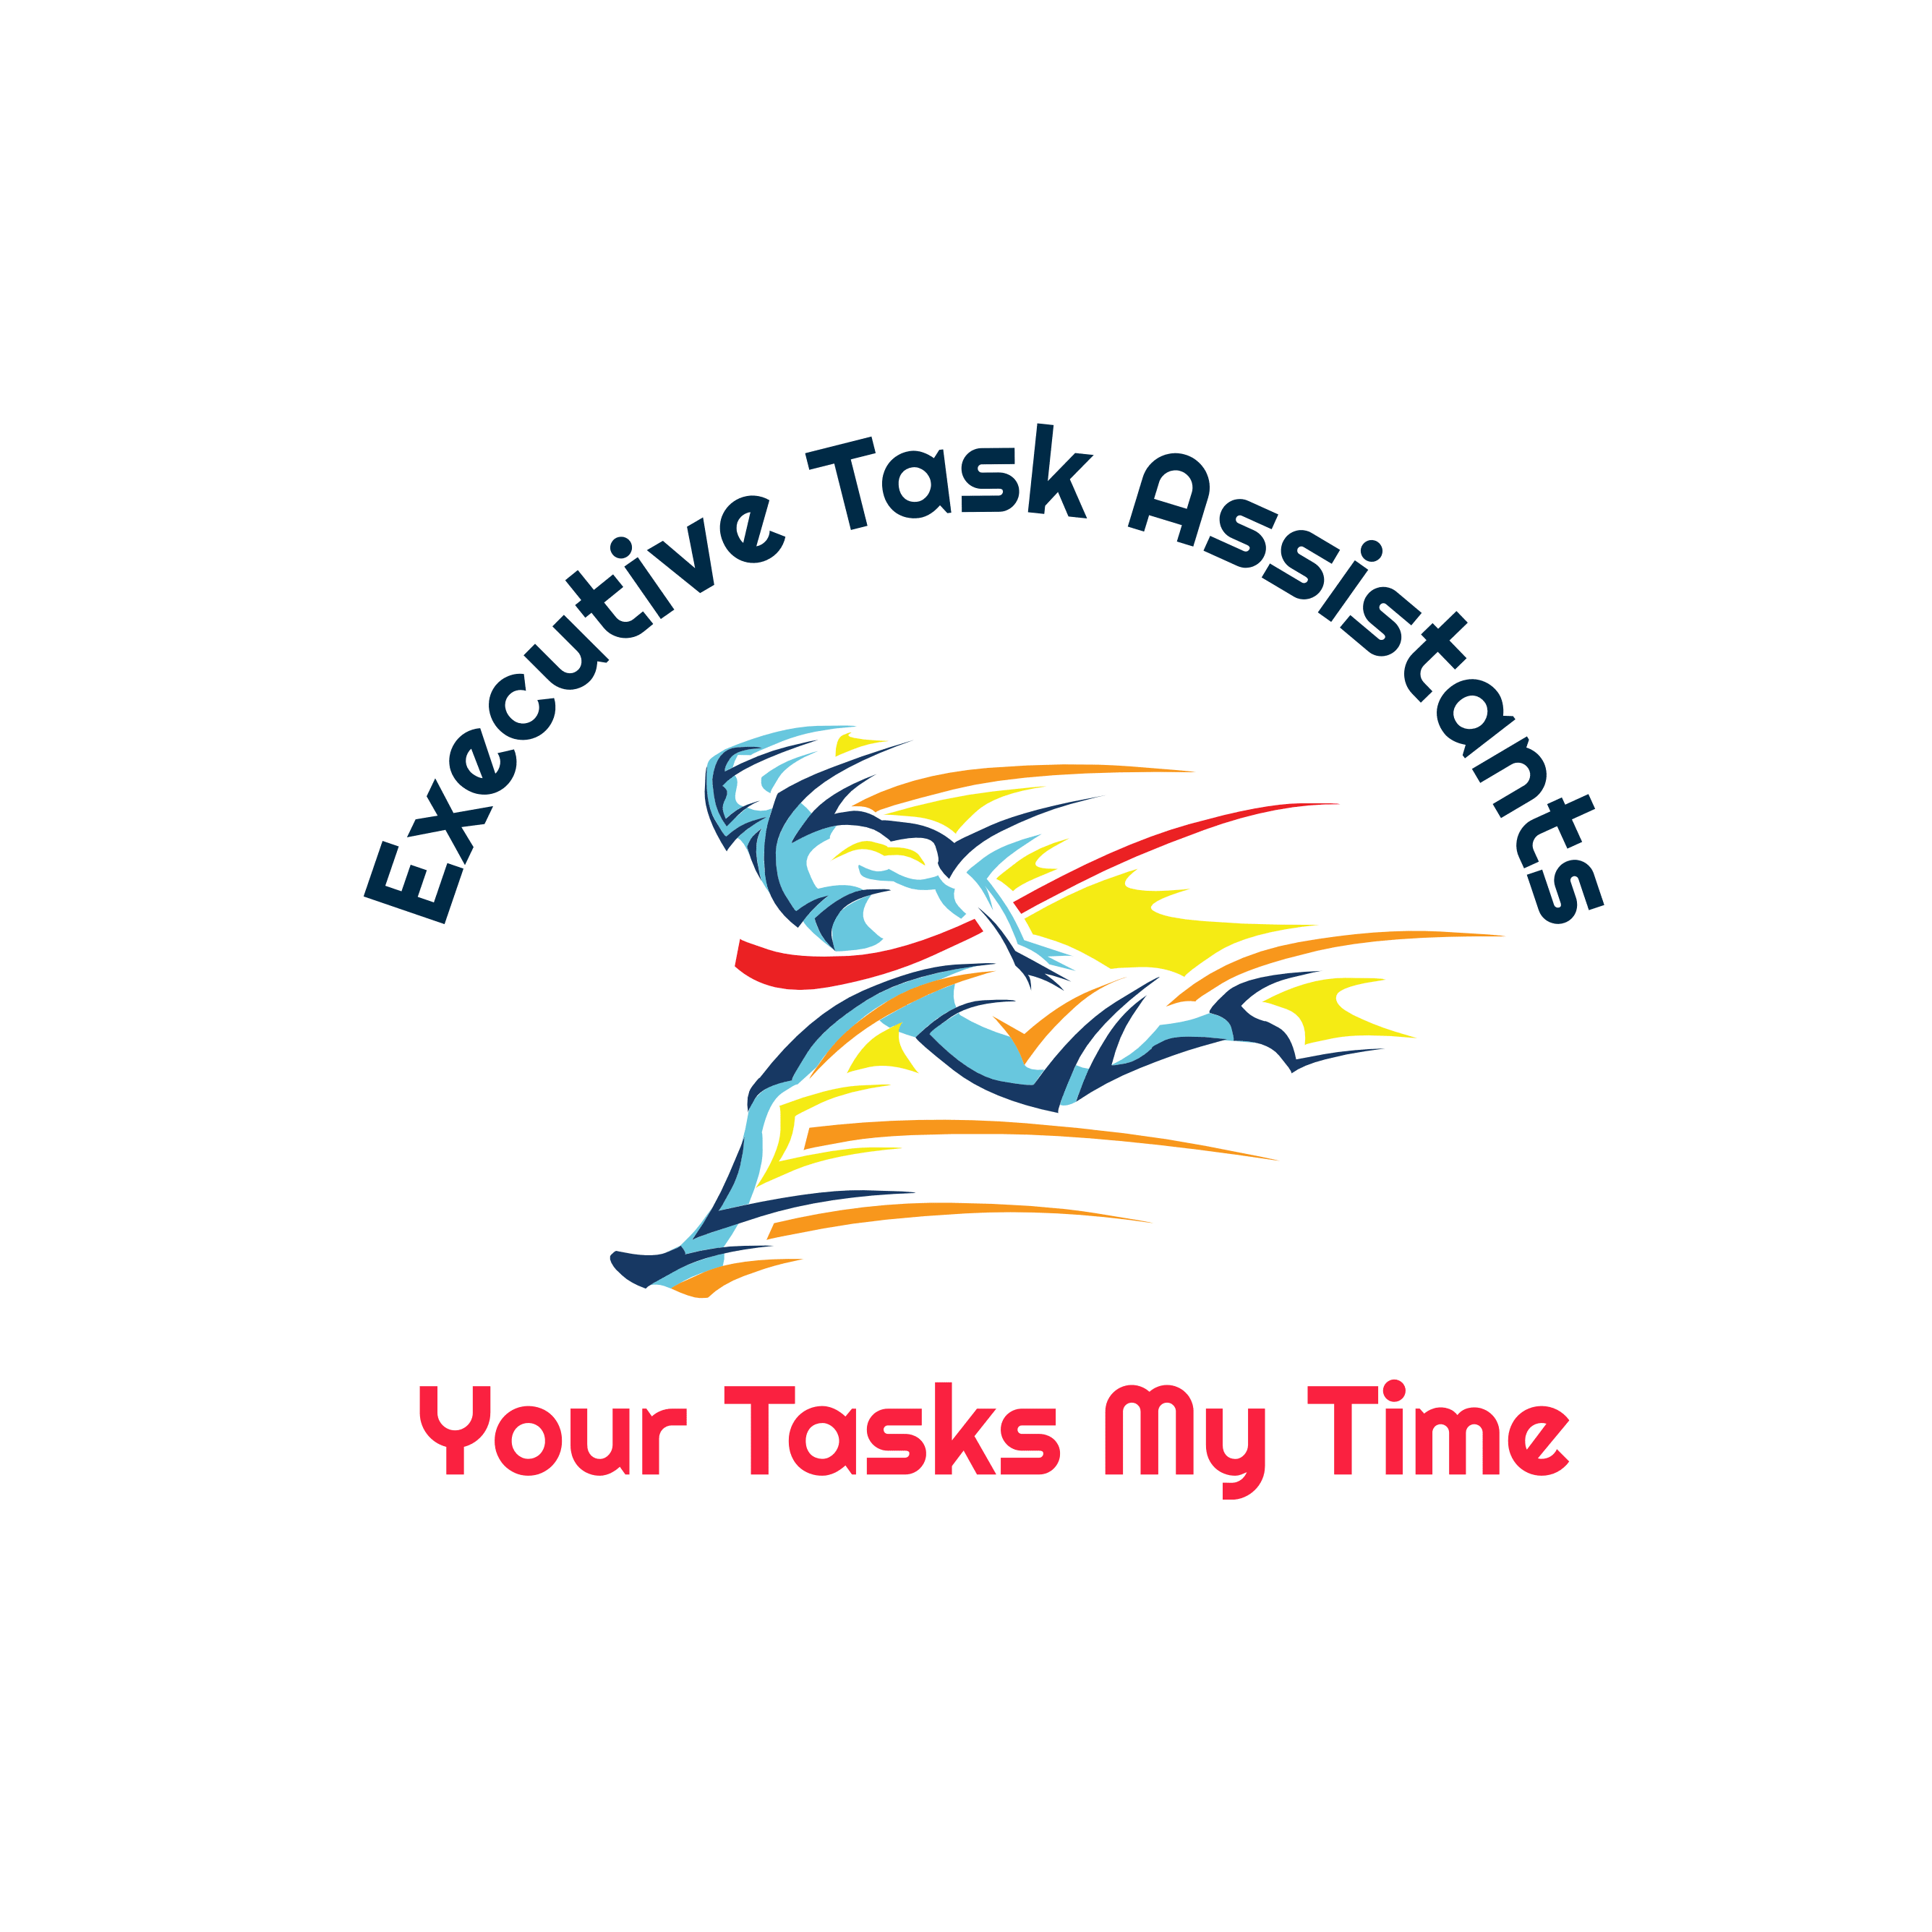 Executive Task Assistants